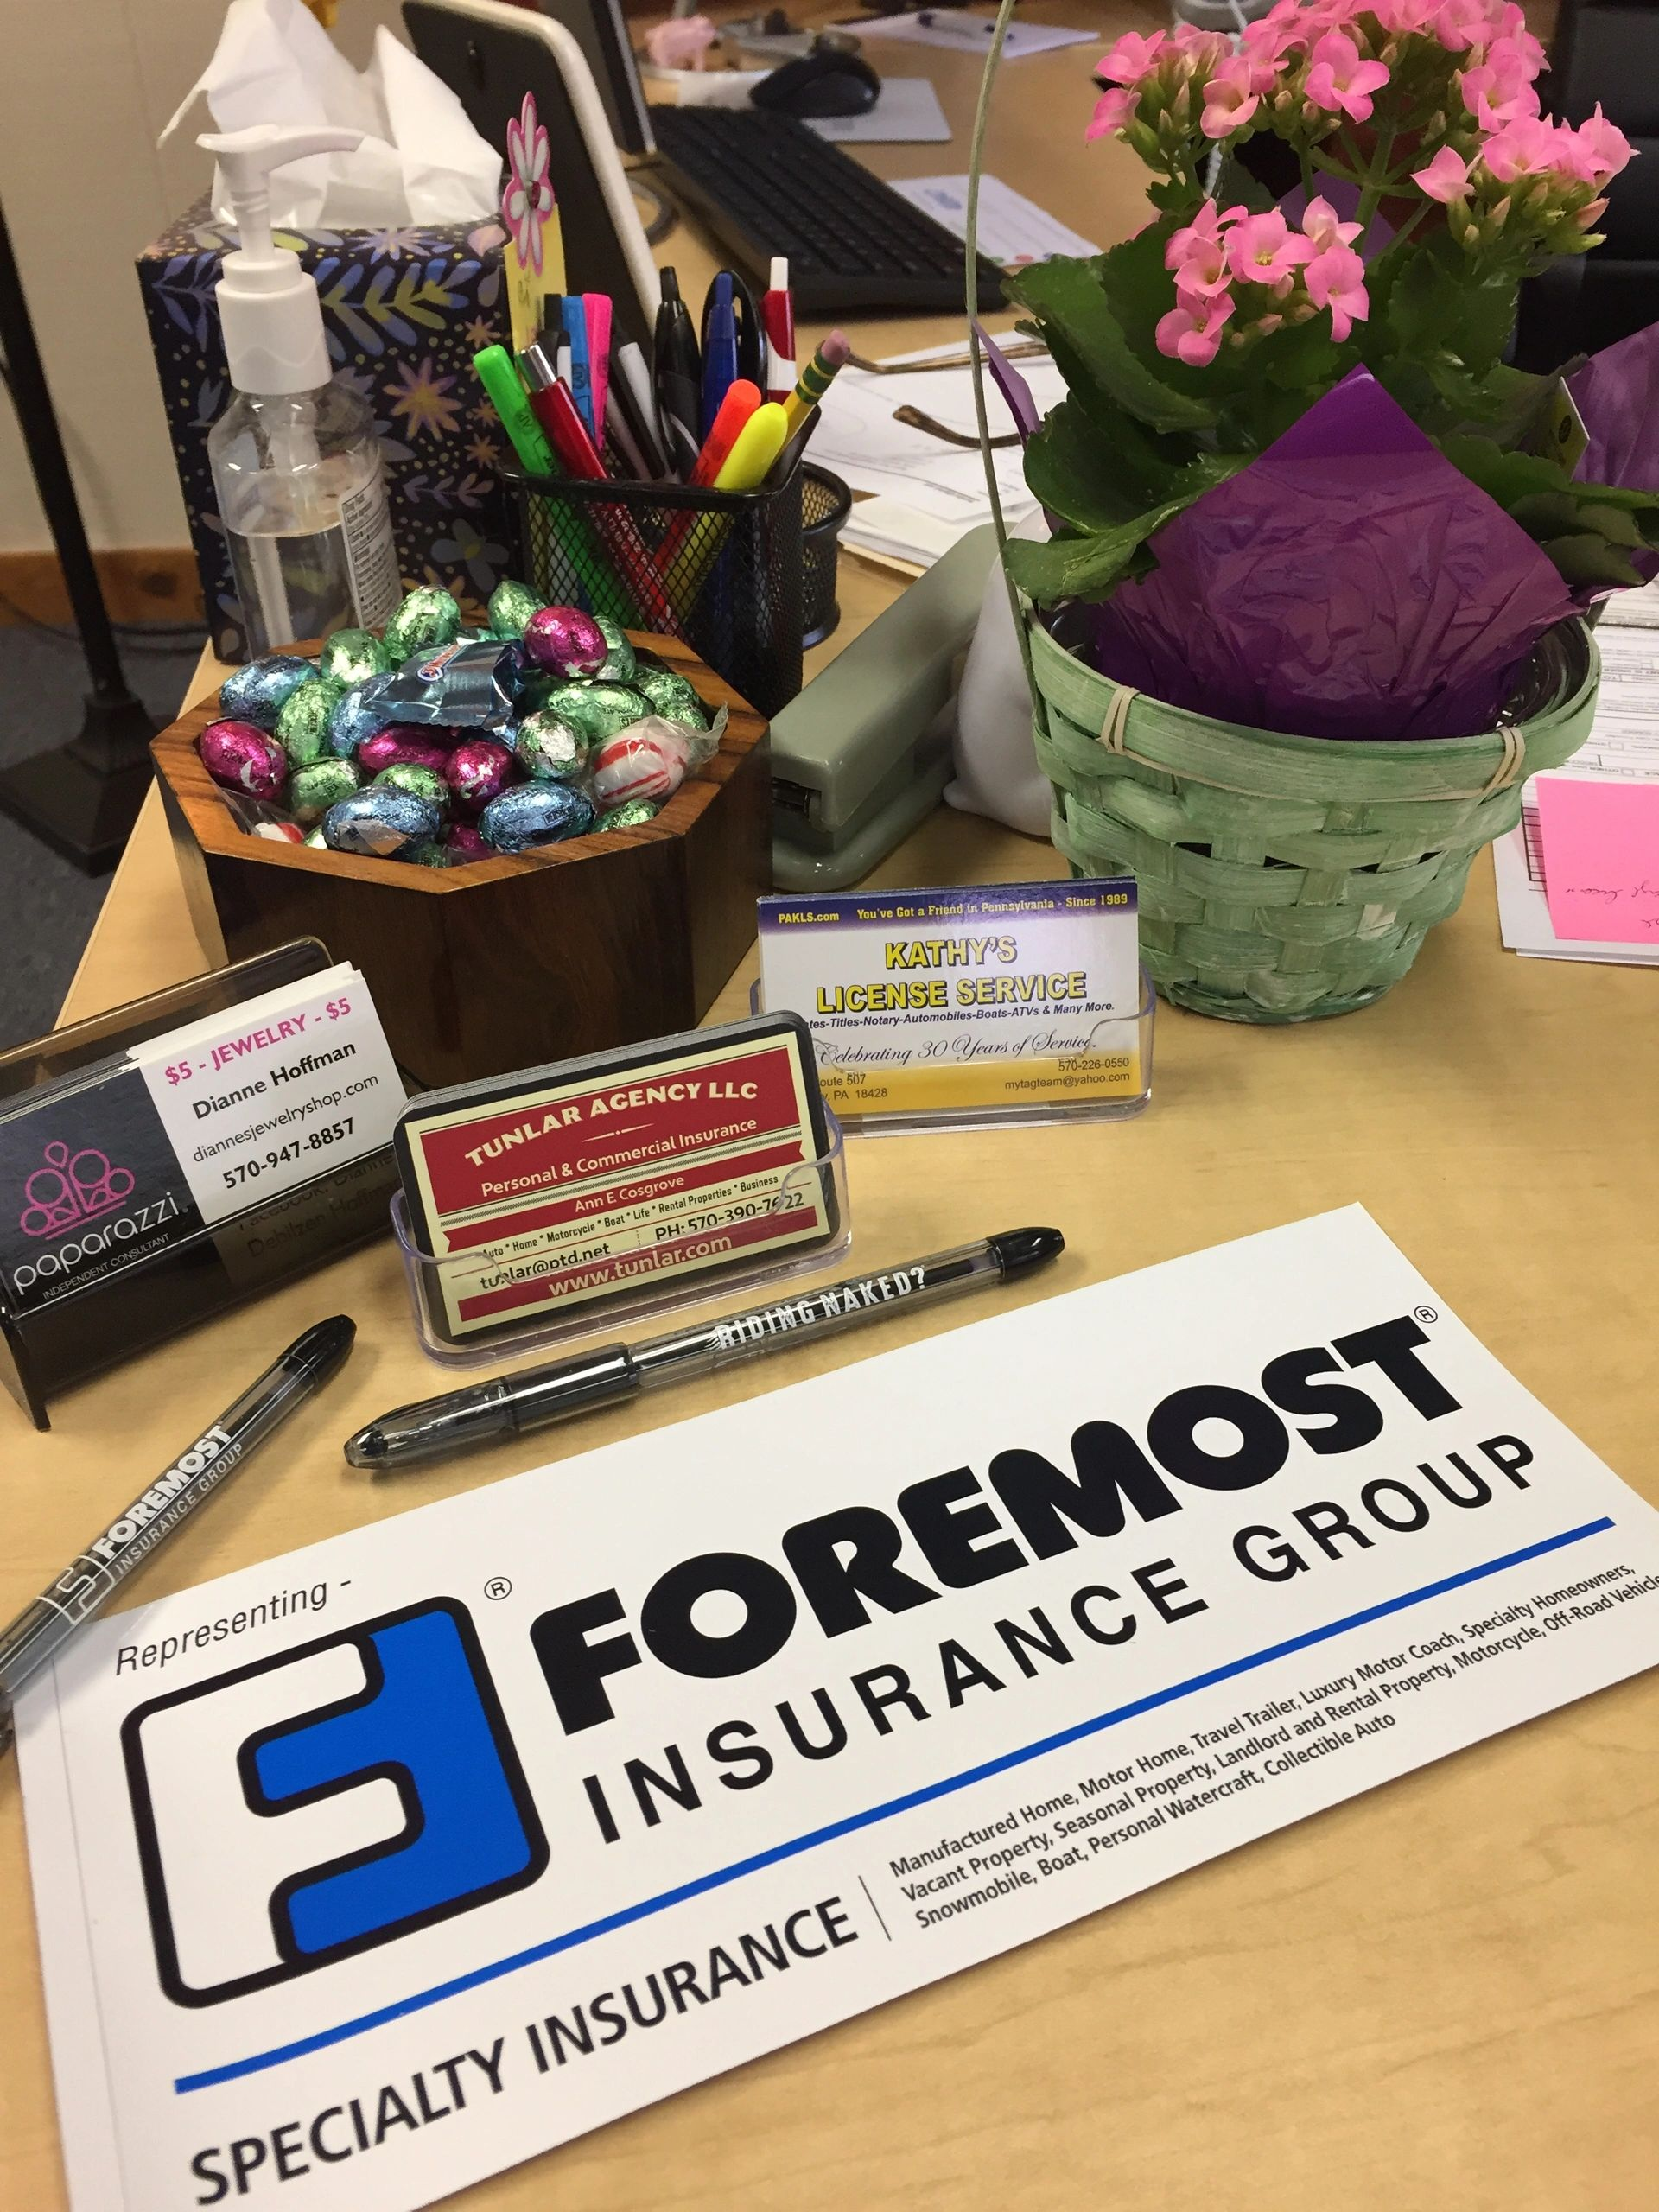 Foremost Specialty Insurance